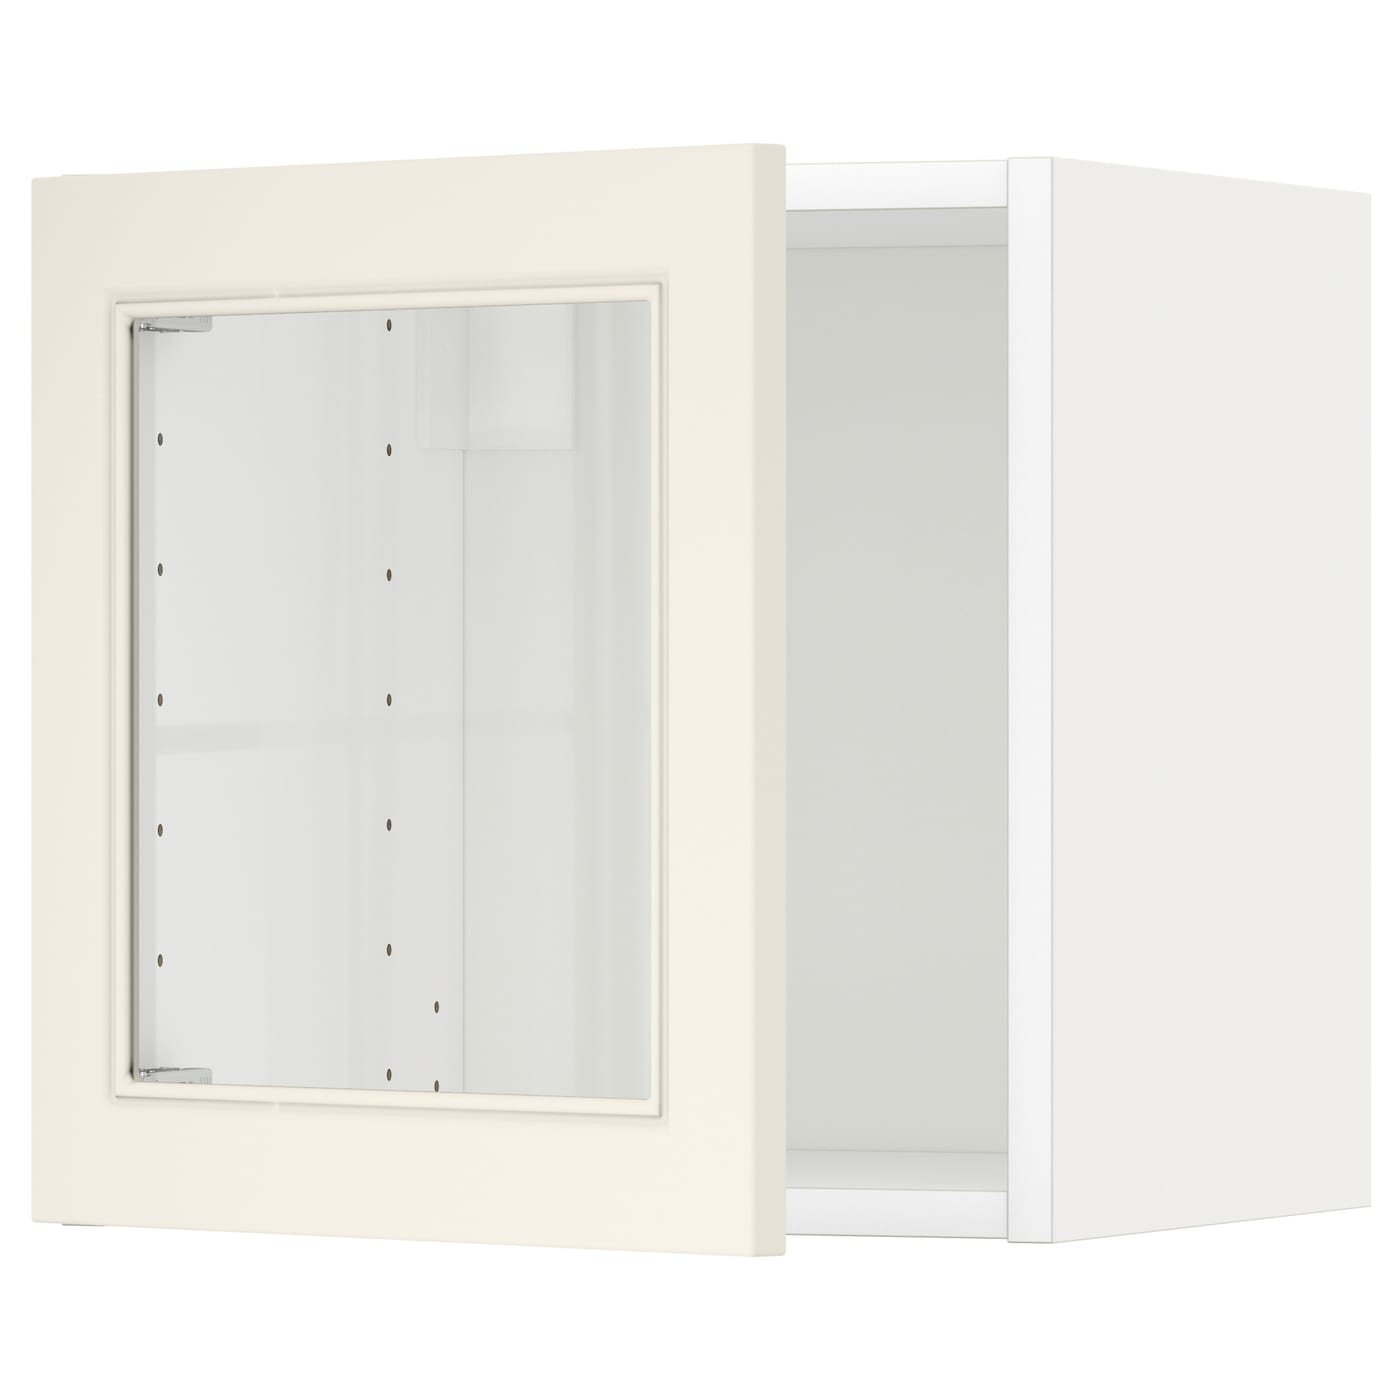 IKEA METOD wall cabinet with glass door You can choose to mount the door on the right or left side.